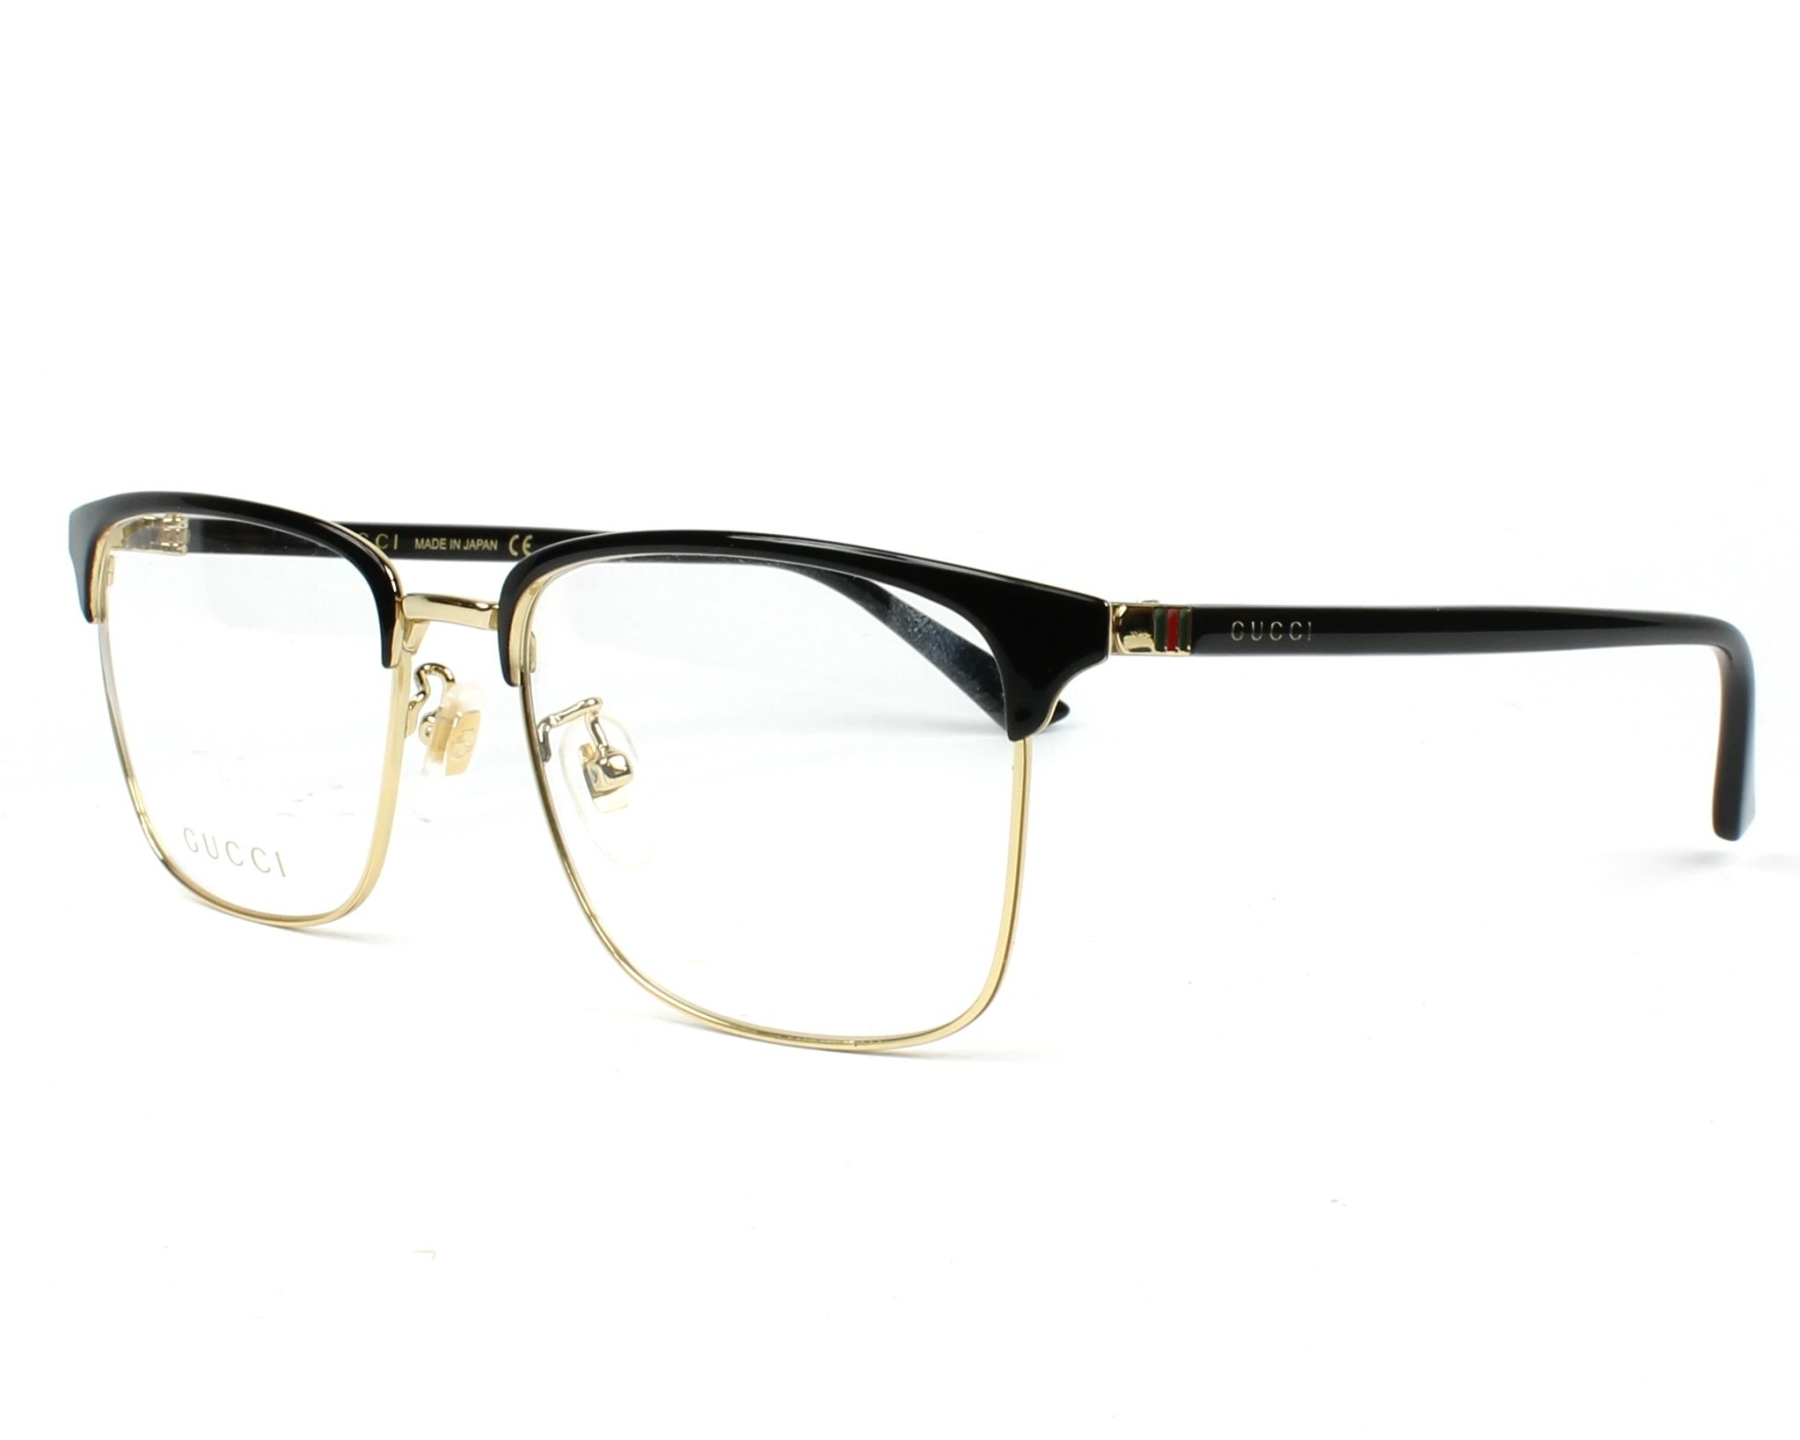 Glasses Frames Adjustment : Order your Gucci eyeglasses GG01300 001 53 today